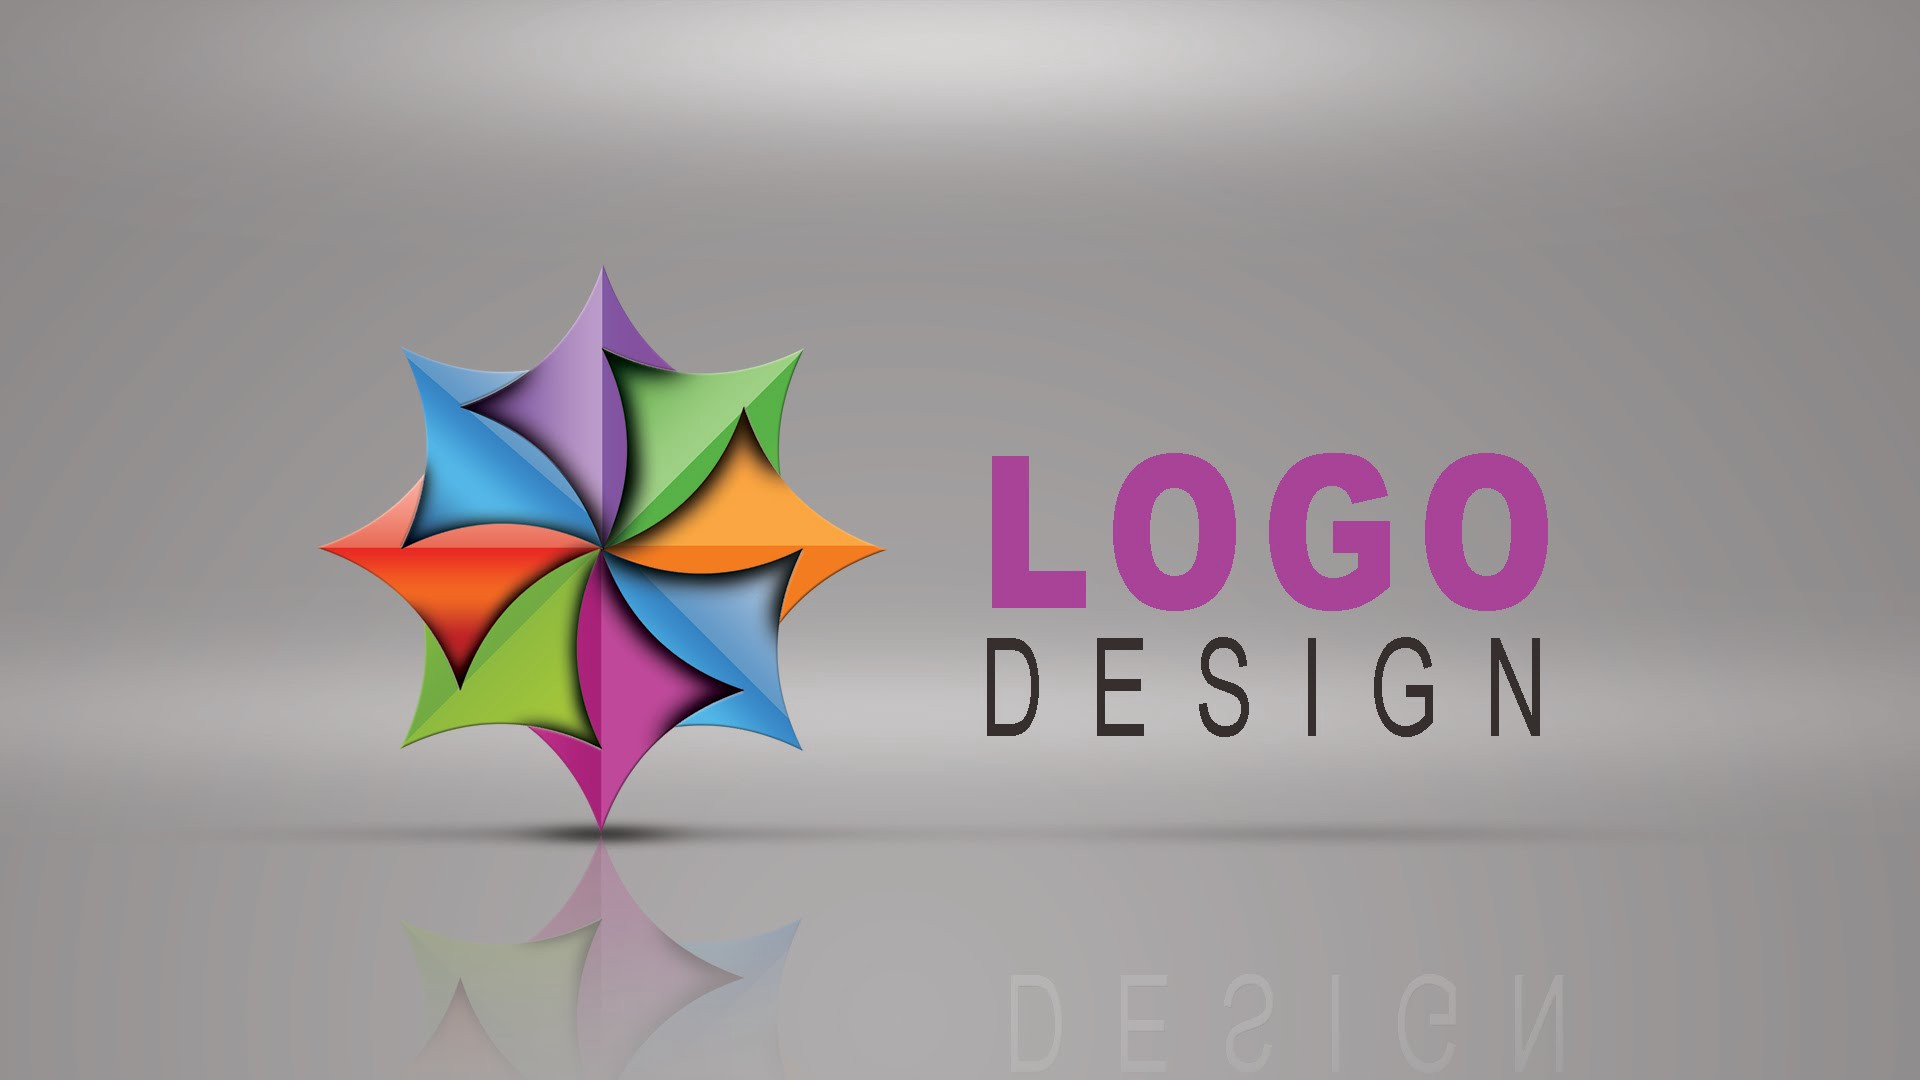 10 Best Logo Design Tutorials & Courses Online — 2019.